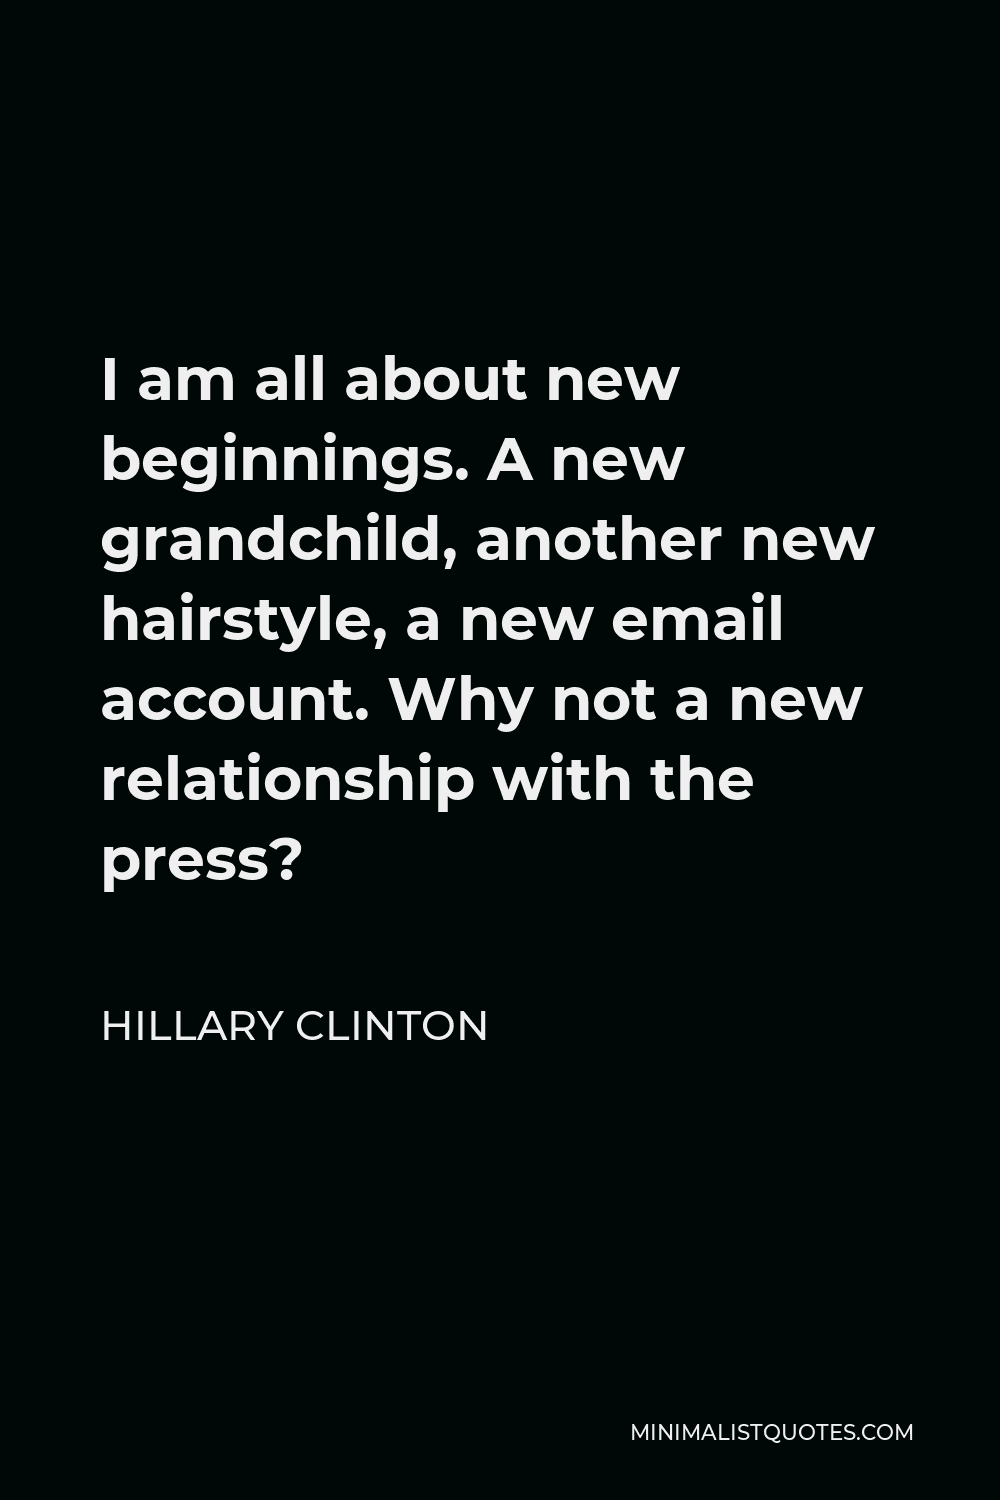 Hillary Clinton Quote - I am all about new beginnings. A new grandchild, another new hairstyle, a new email account. Why not a new relationship with the press?